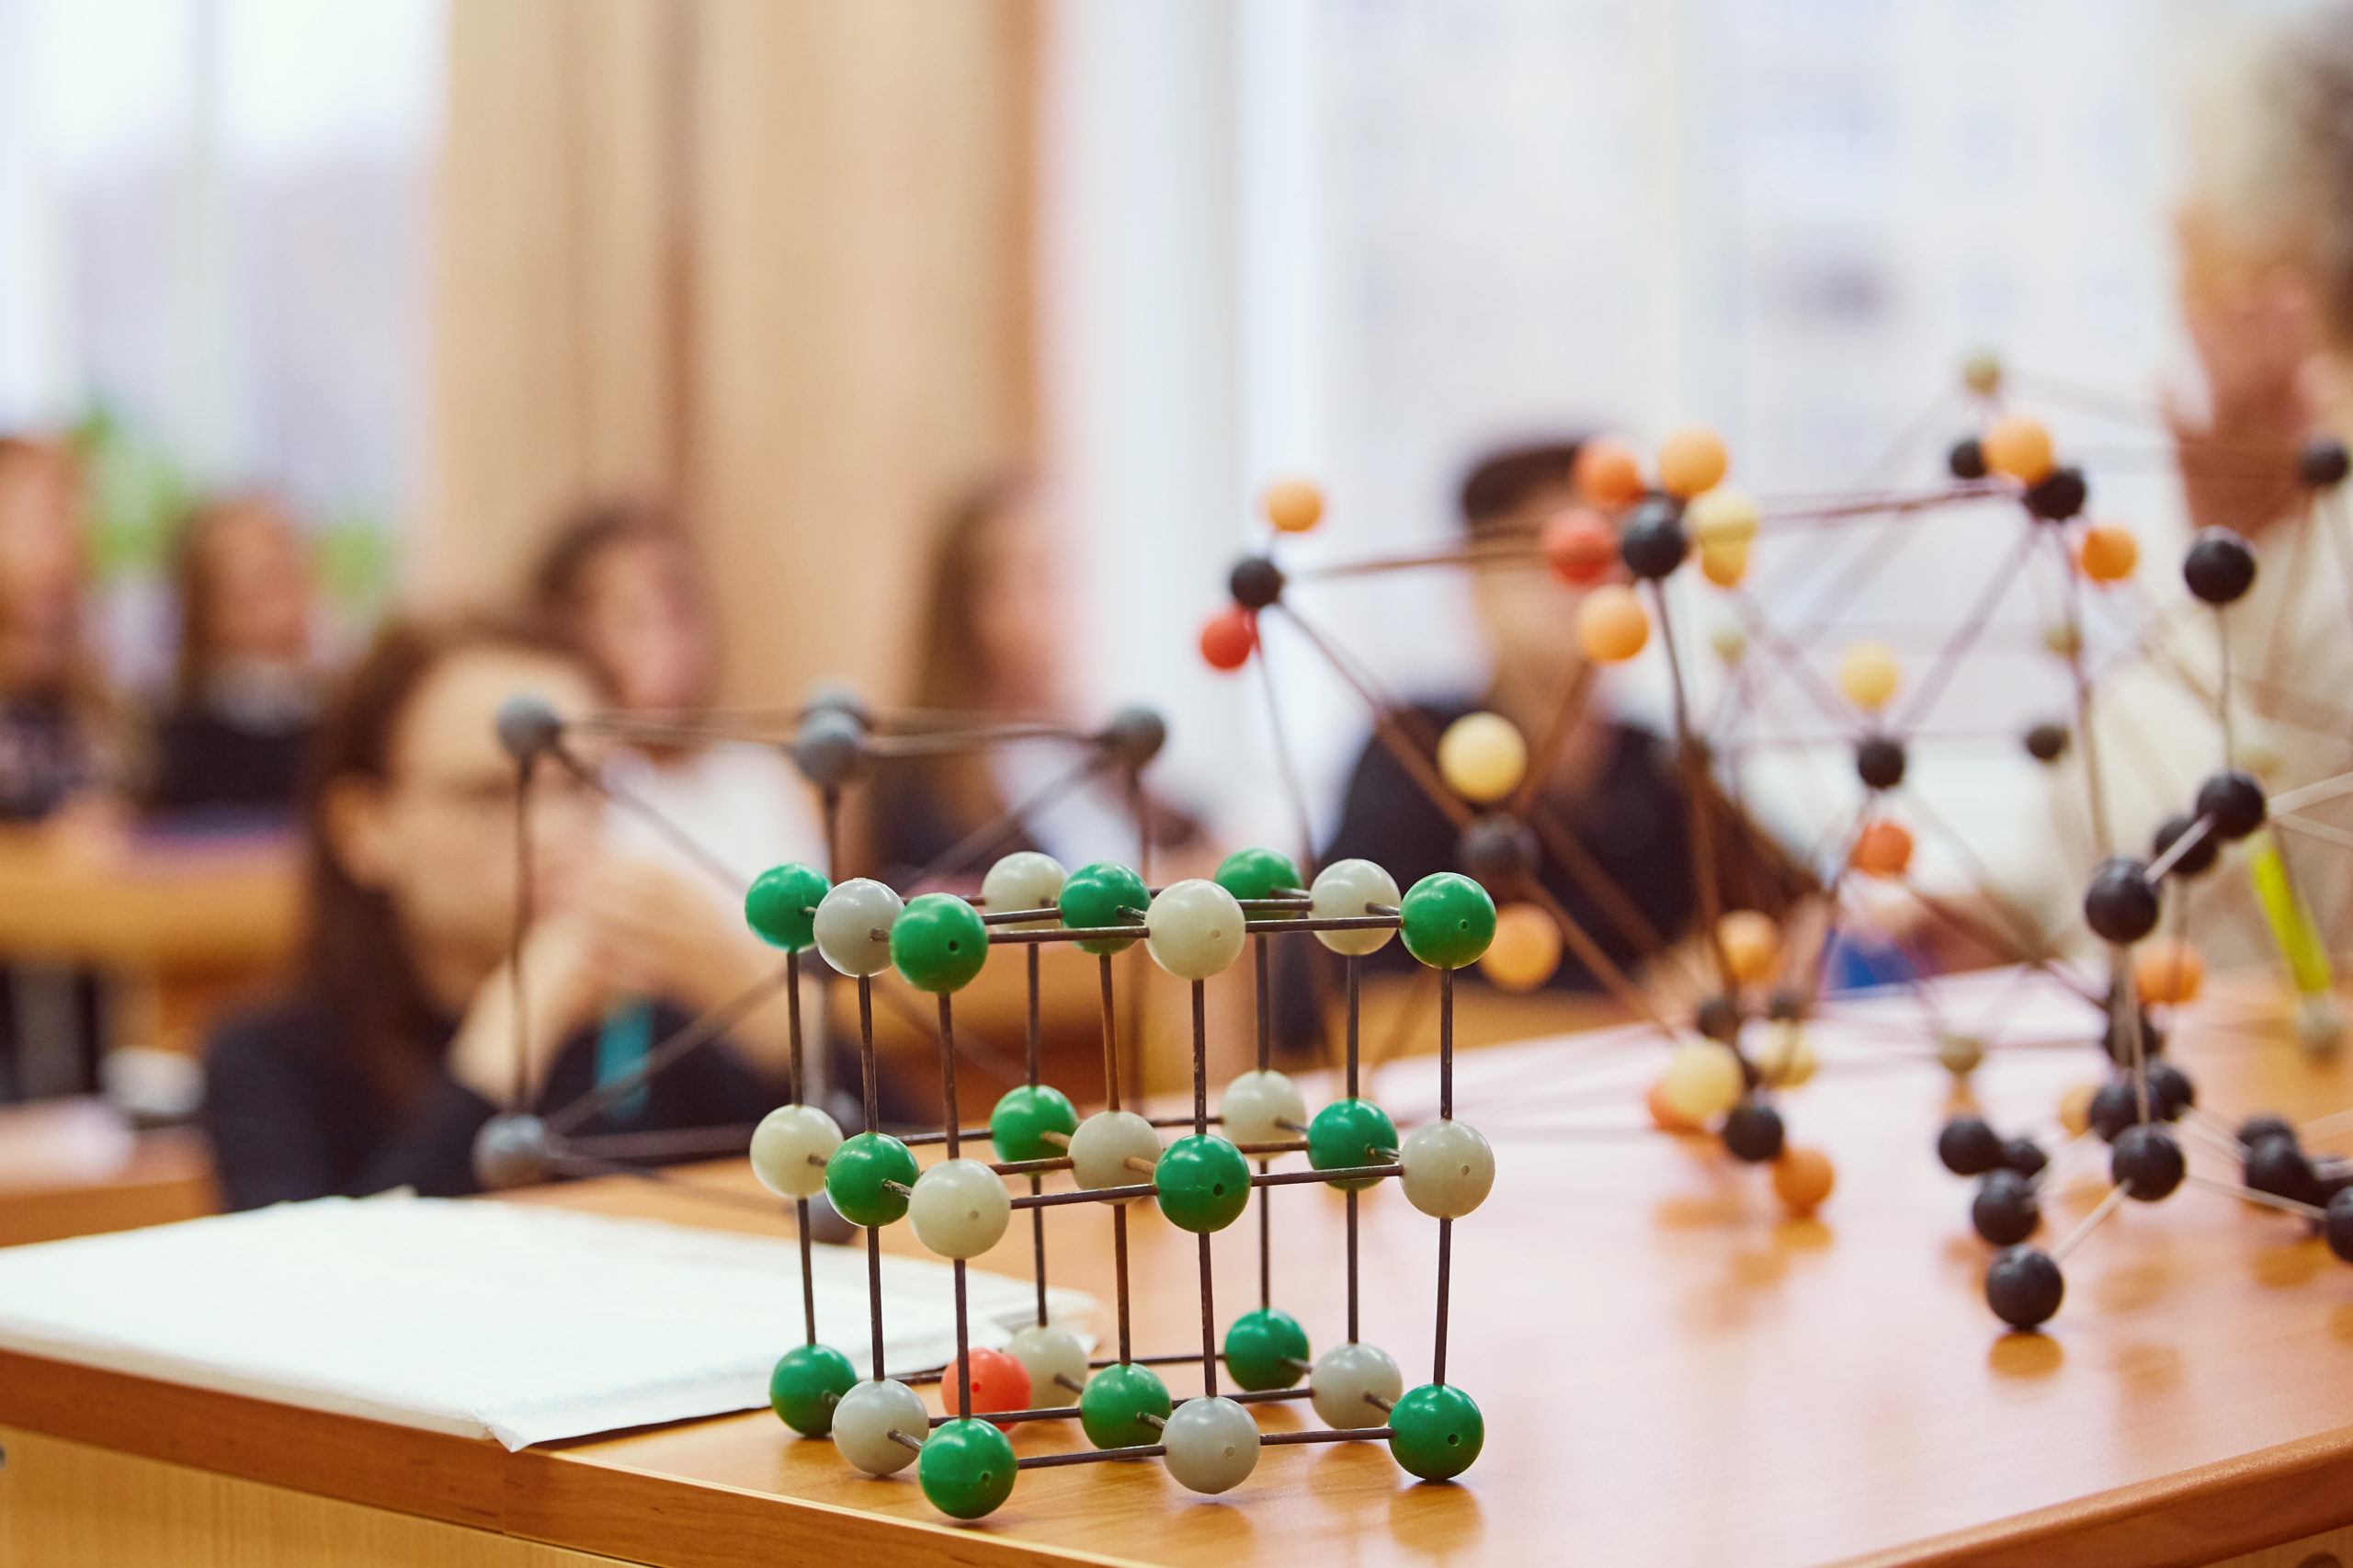 Students sit in the classroom and listen to a lecture in science. Plastic molecular educational model. Soft focus background image